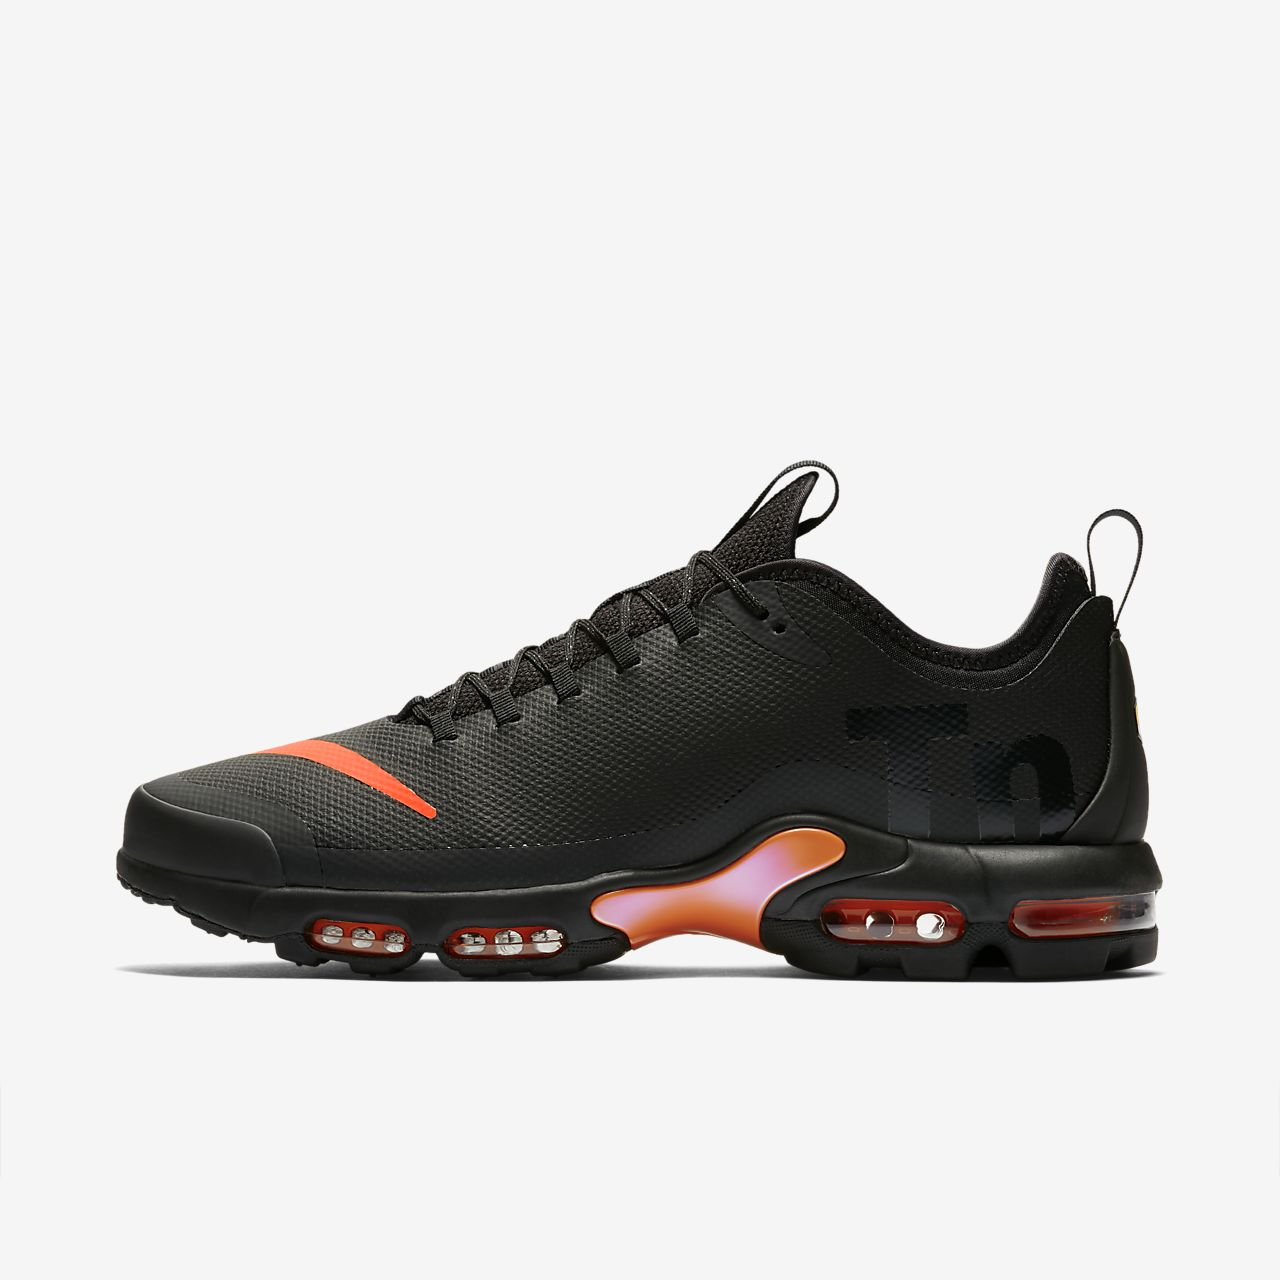 nike air max plus tn ultra se herresko no. Black Bedroom Furniture Sets. Home Design Ideas